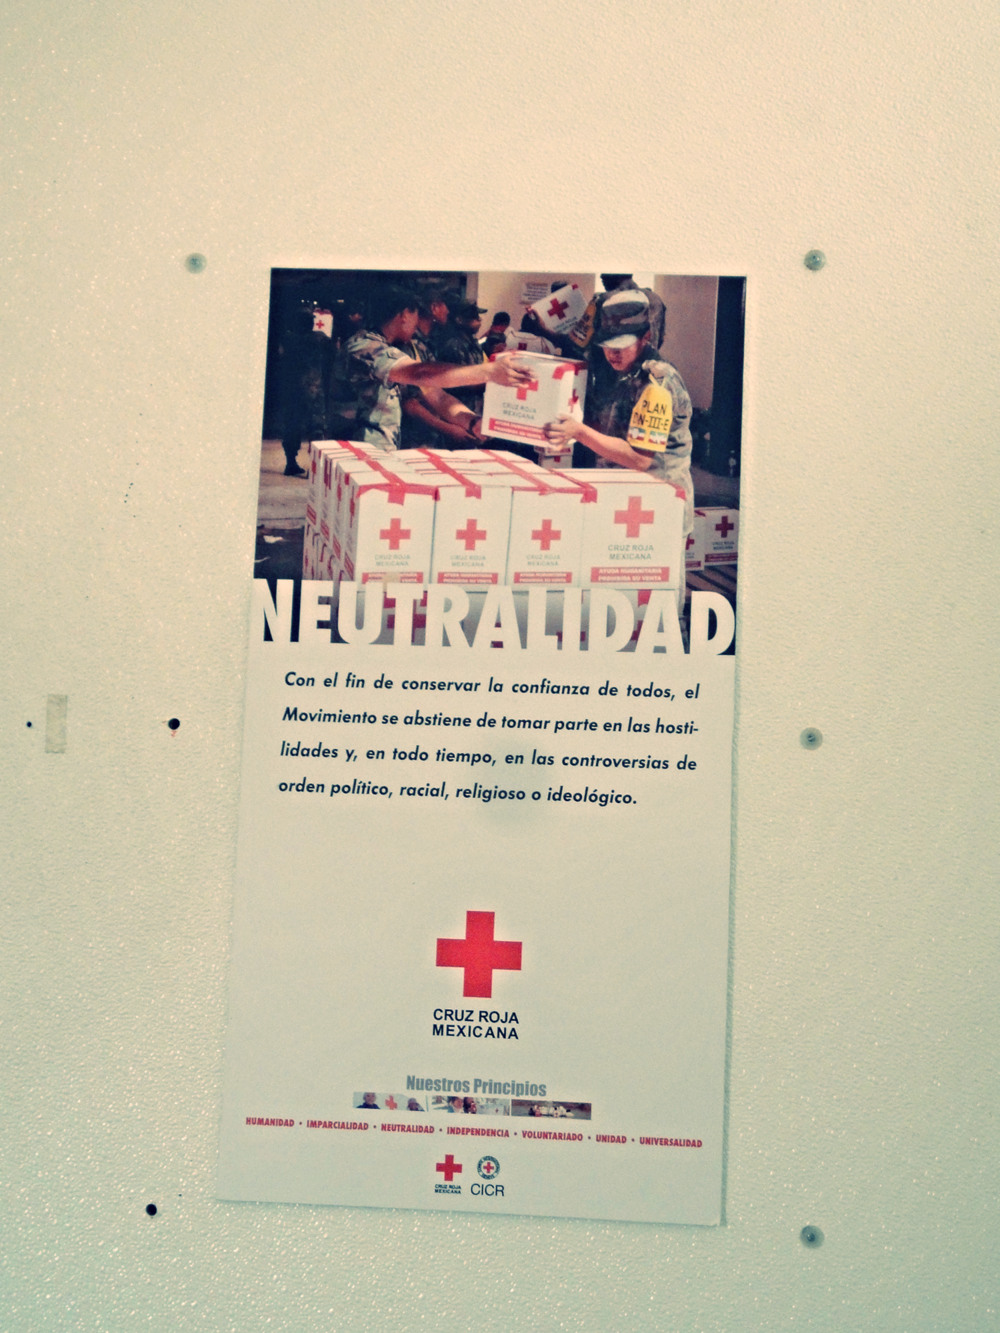 The Red Cross seven Fundamental Principles of humanity, impartiality, neutrality, independence, voluntary service, unity, and universality are posted inside the clinics with descriptions.